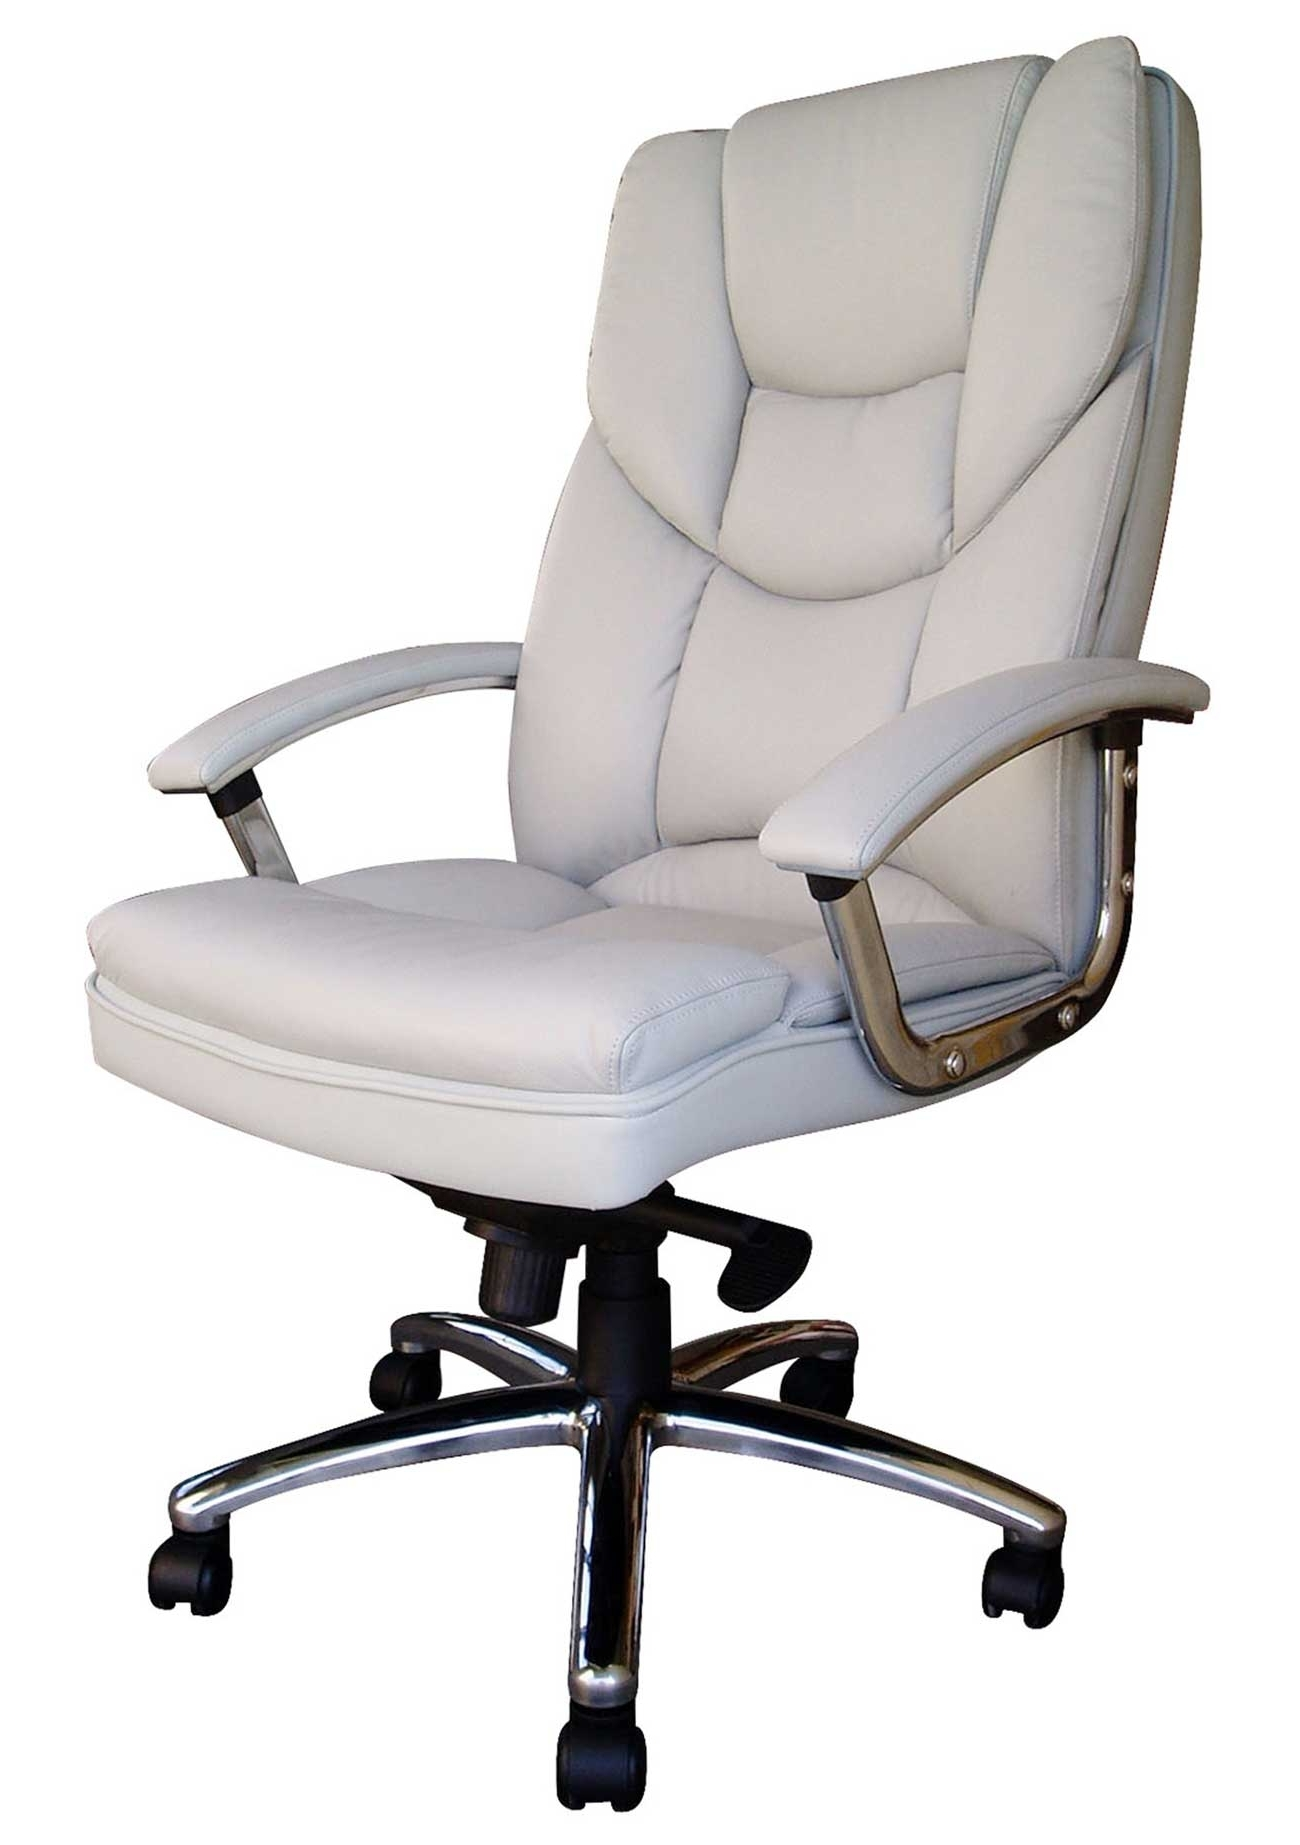 Well Known Leather Swivel Recliner Executive Office Chairs Intended For Funiture: White Office Furniture Ideas Using White Leather Swivel (View 4 of 20)